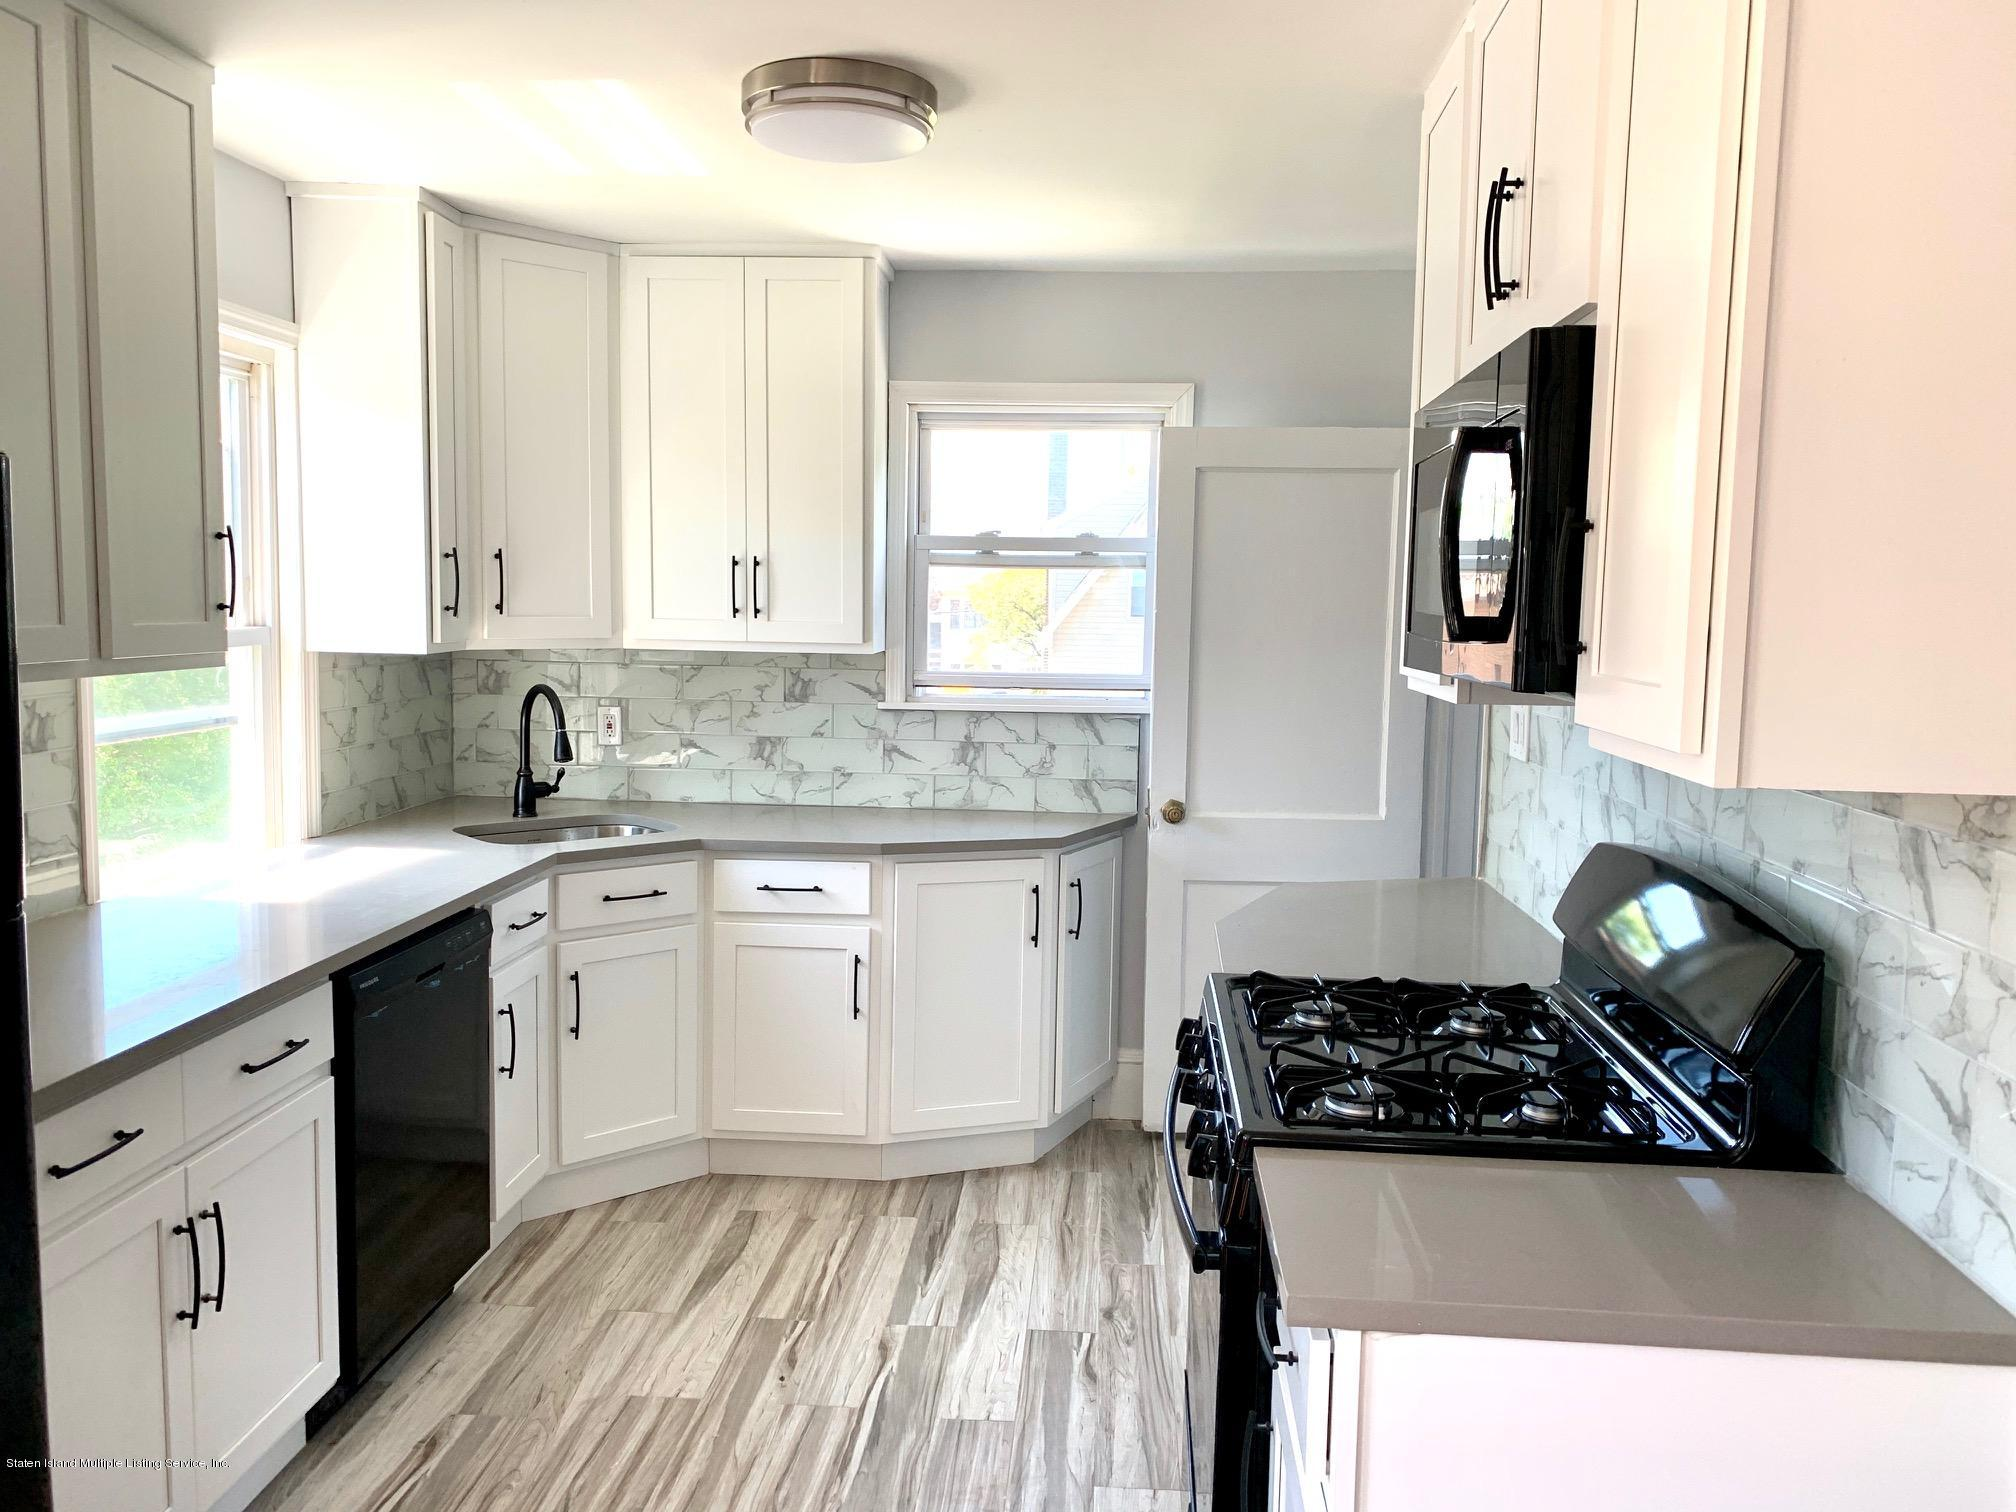 Two Family - Detached 20 Locust Avenue  Staten Island, NY 10306, MLS-1138037-16